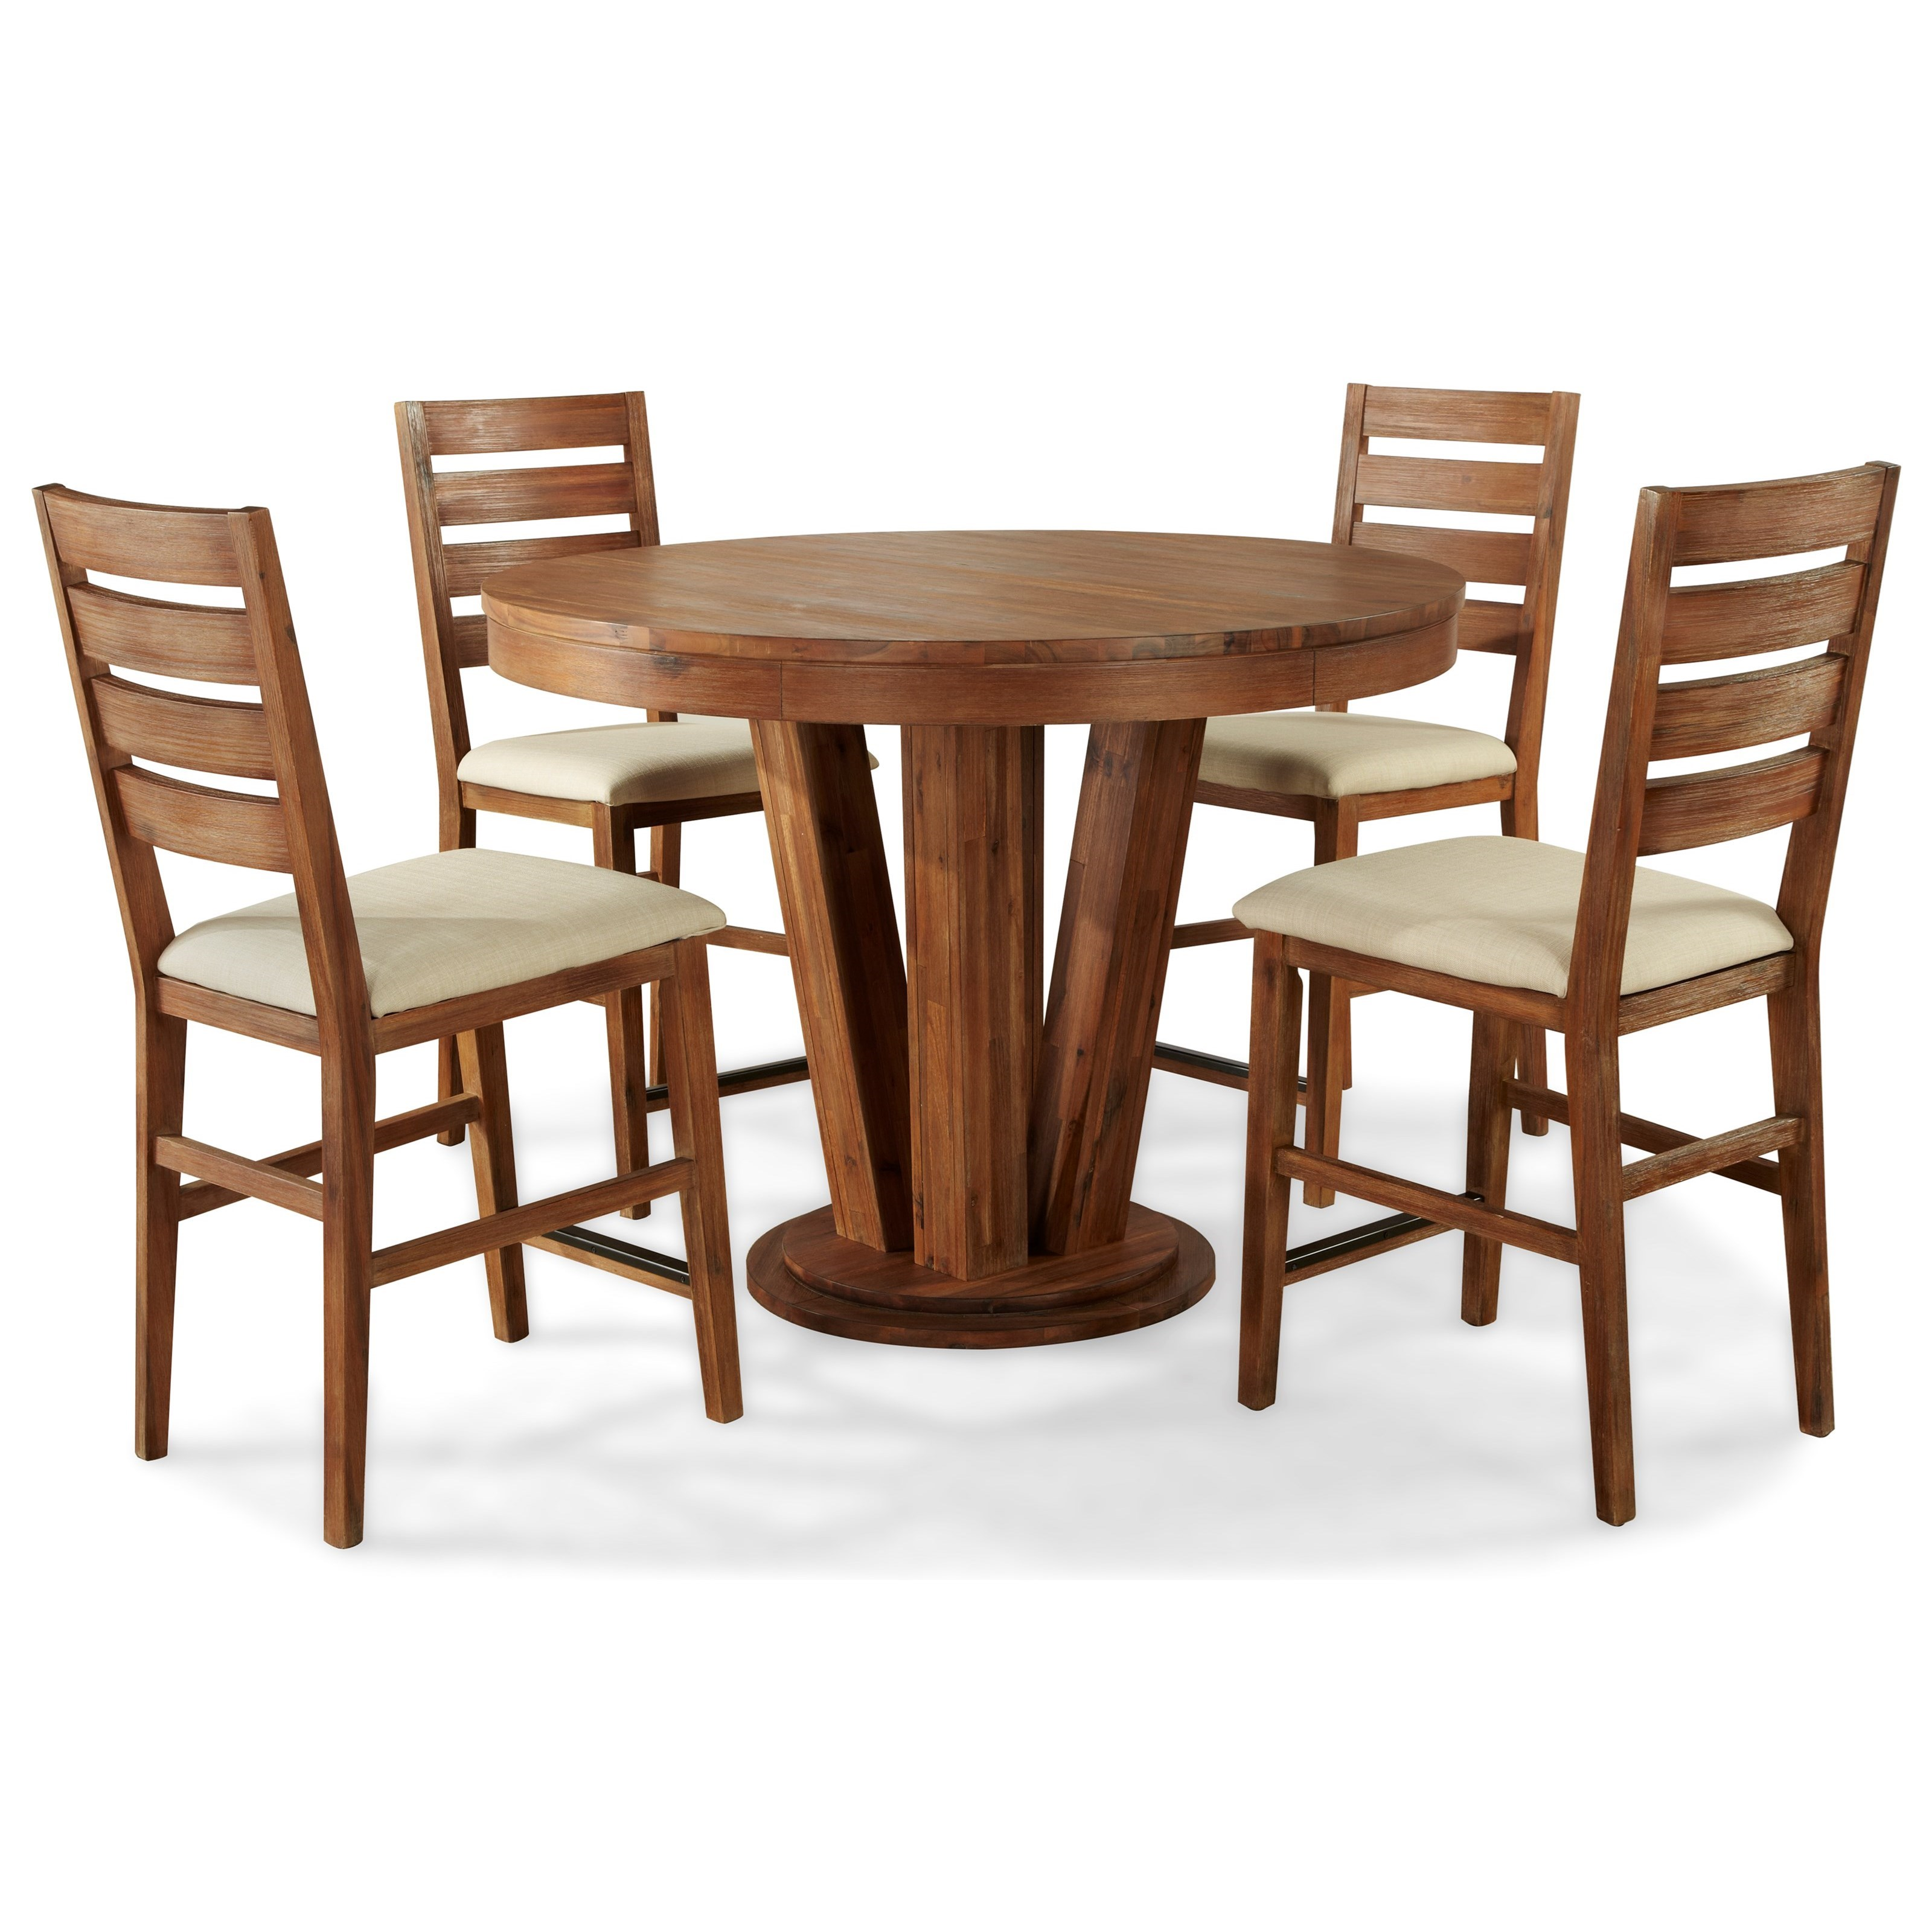 By Cresent Fine Furniture. 5 Piece Counter Height Table And Chair Set